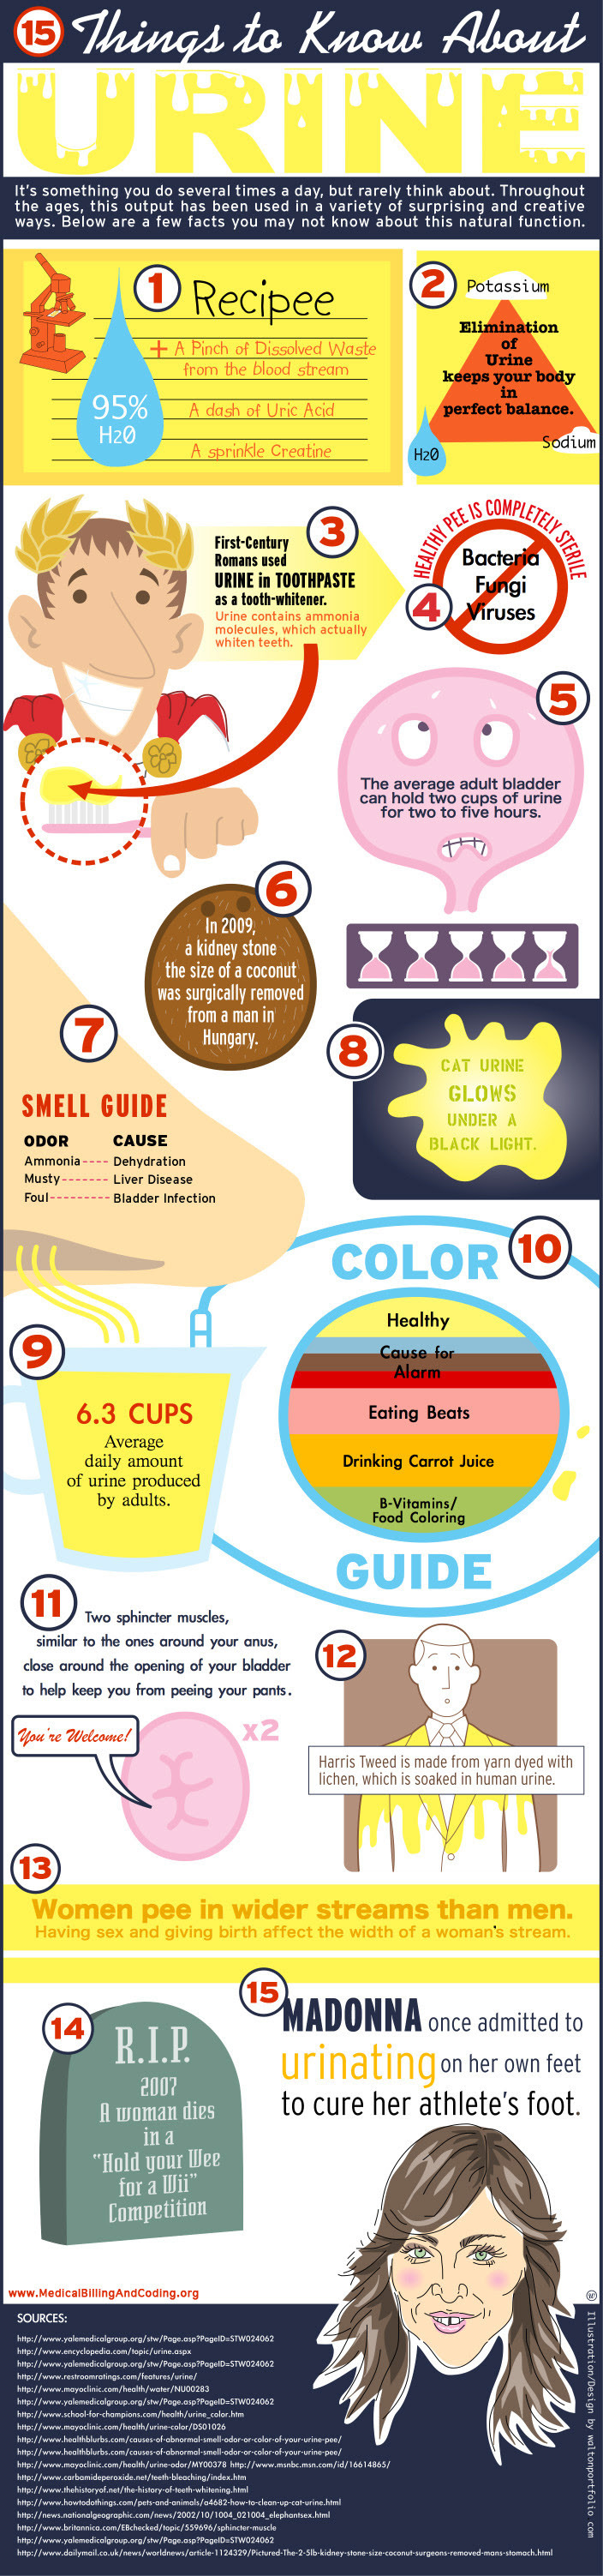 Infographic: 15 Things to Know About Urine